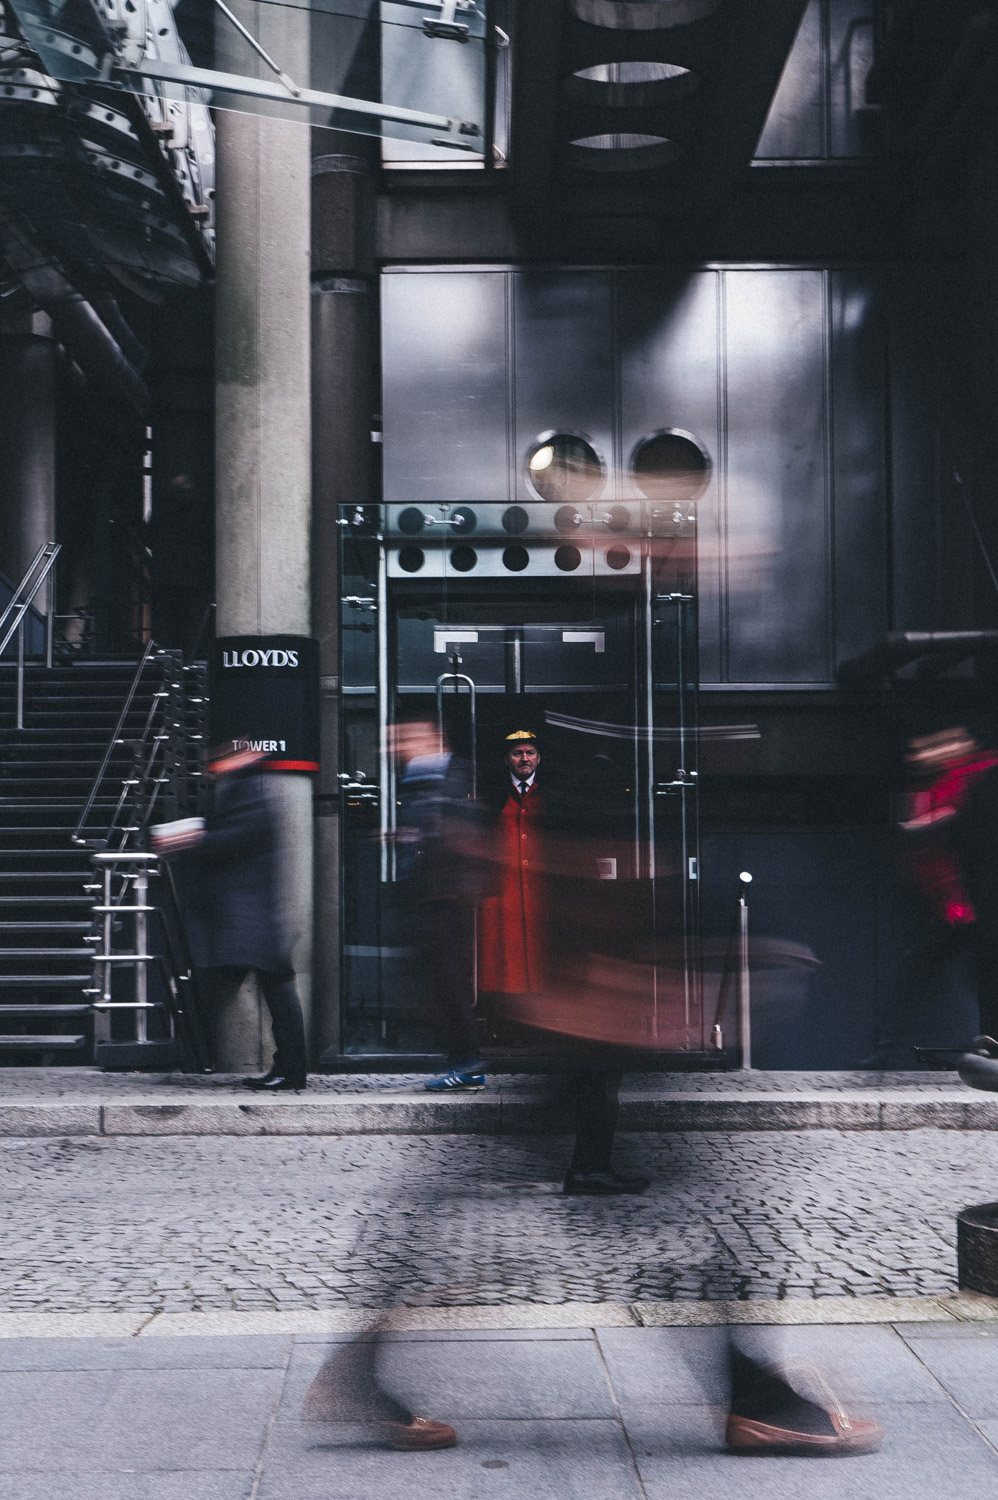 motion blur in front of buildings